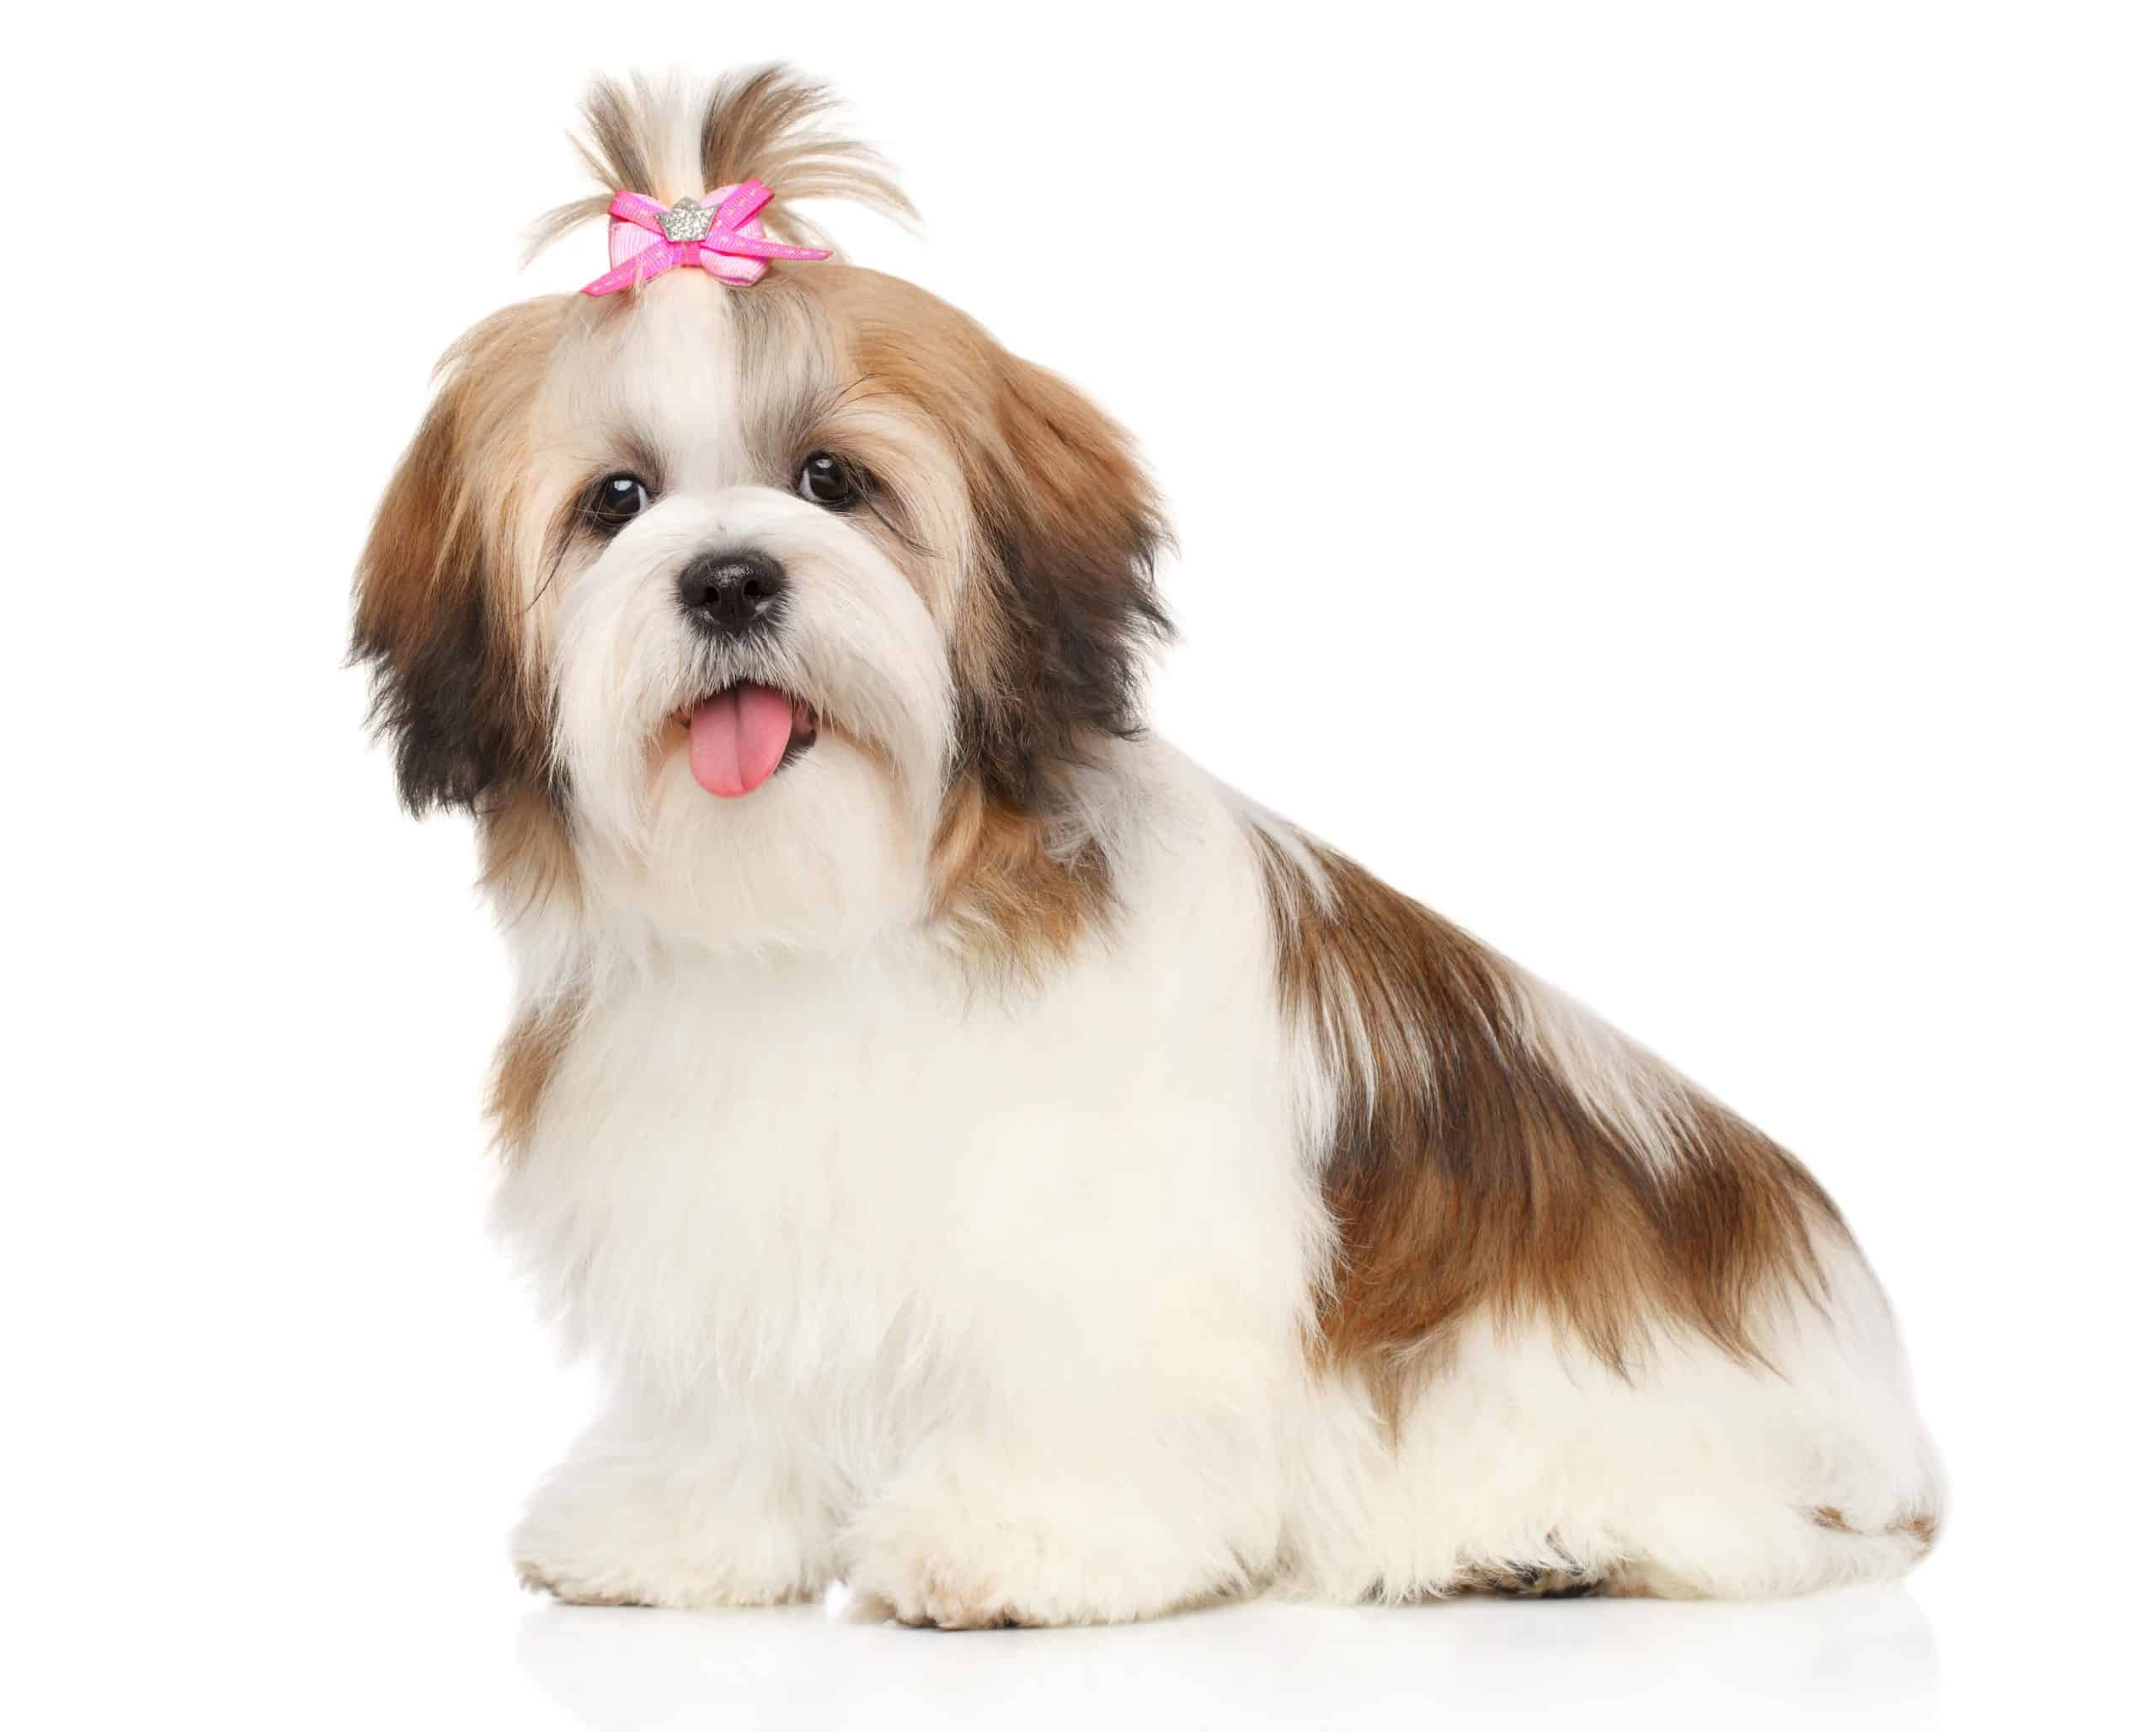 The shih tzu is considered a non-shedding dog breed.